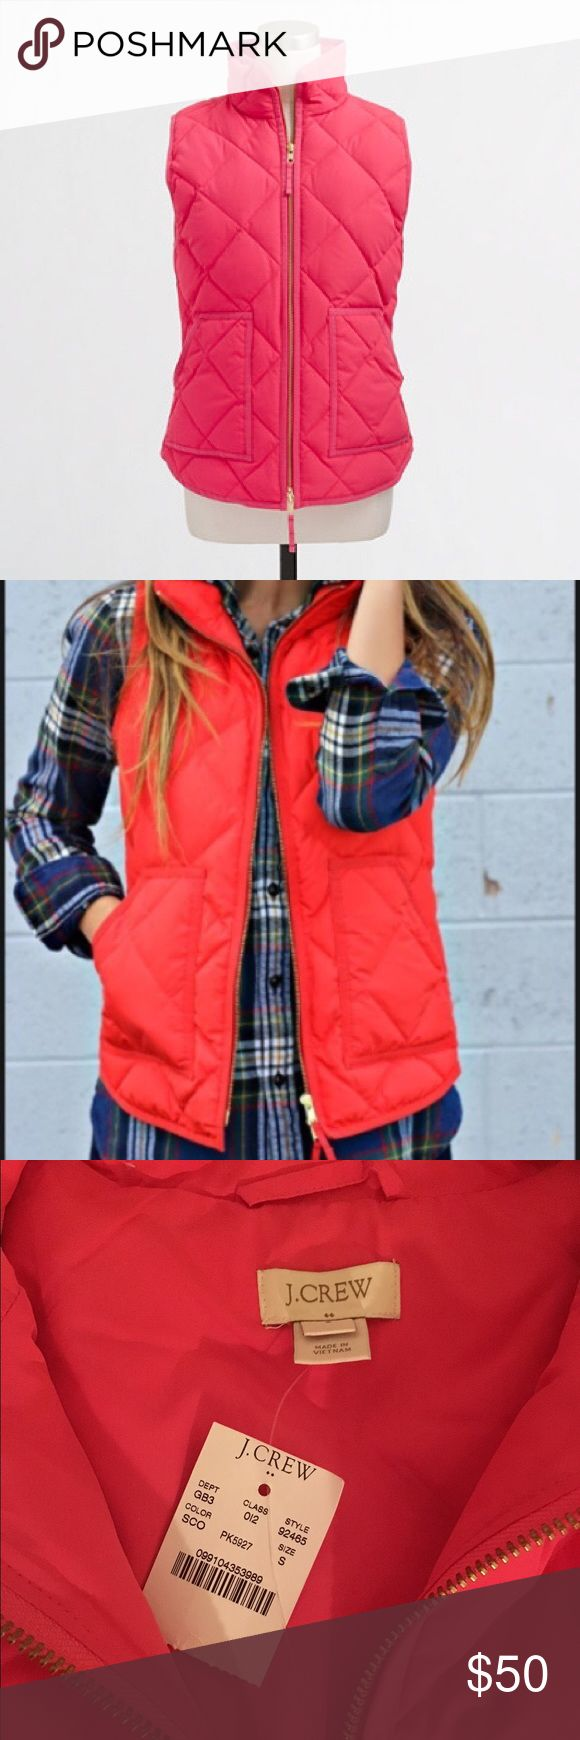 💘HP💘 J. Crew quilted puffer vest in coral - NWT! J.Crew quilted puffer vest in seaside coral - NWT!! The first stock photo shows the same vest in a more reddish hue for reference, but I am selling the coral one as shown in the other 3 photos. Size small. Product details: Down-filled poly; hits at hip; standing collar; zip closure; patch pockets with hidden snap closure. Perfect transitional piece for Spring! Smoke-free home 😊 J. Crew Jackets & Coats Vests